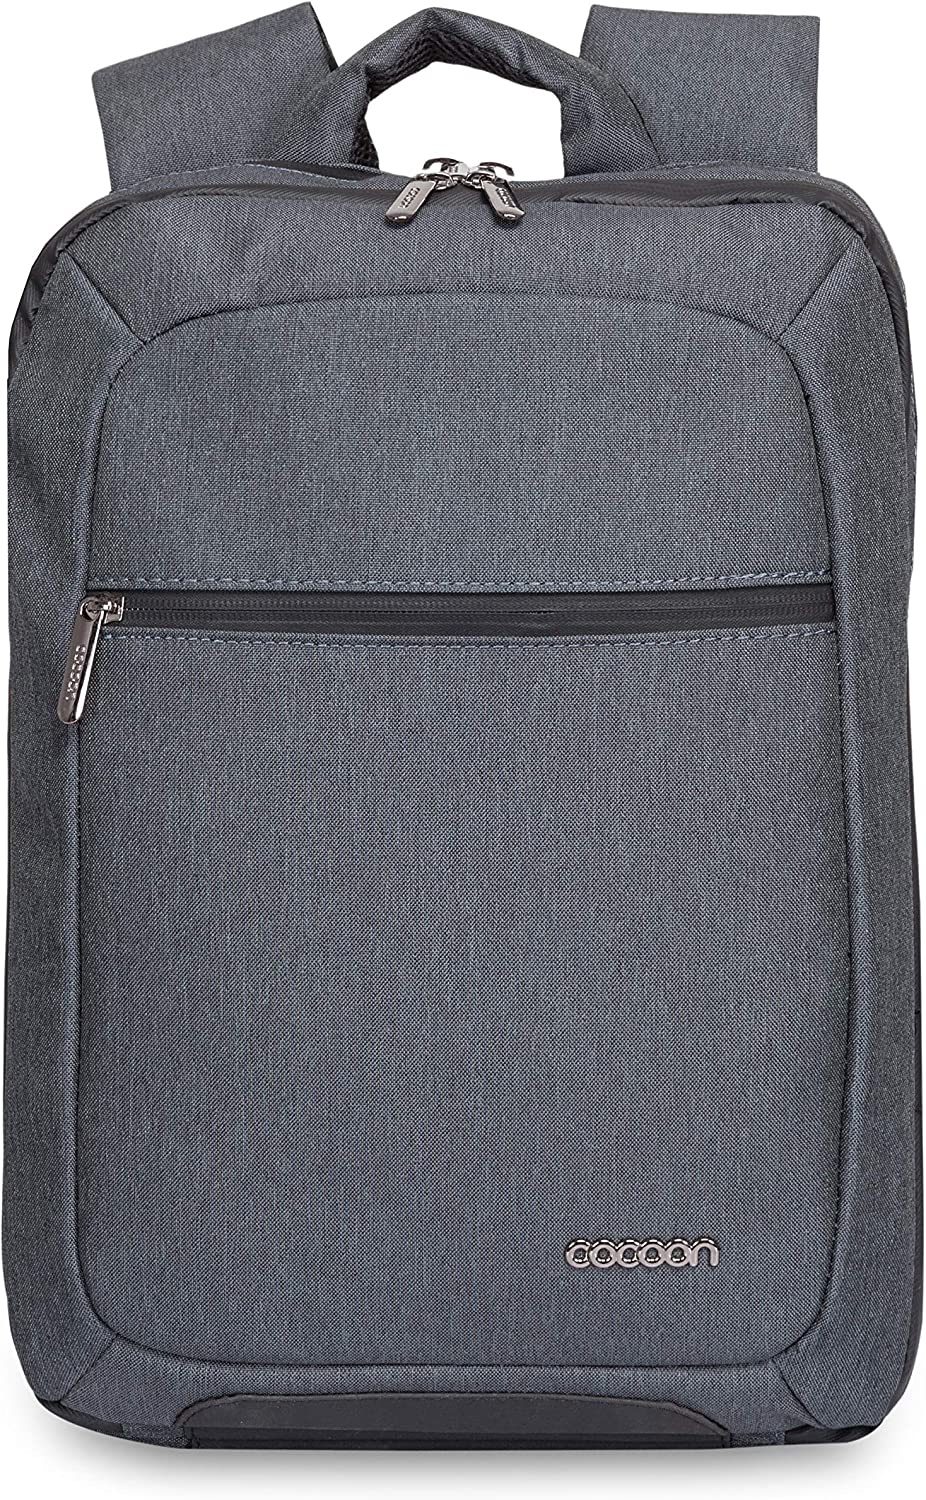 """Cocoon MCP3401GF Slim 15"""" Backpack with Built-in Grid-IT! Accessory Organizer (Graphite Gray)"""